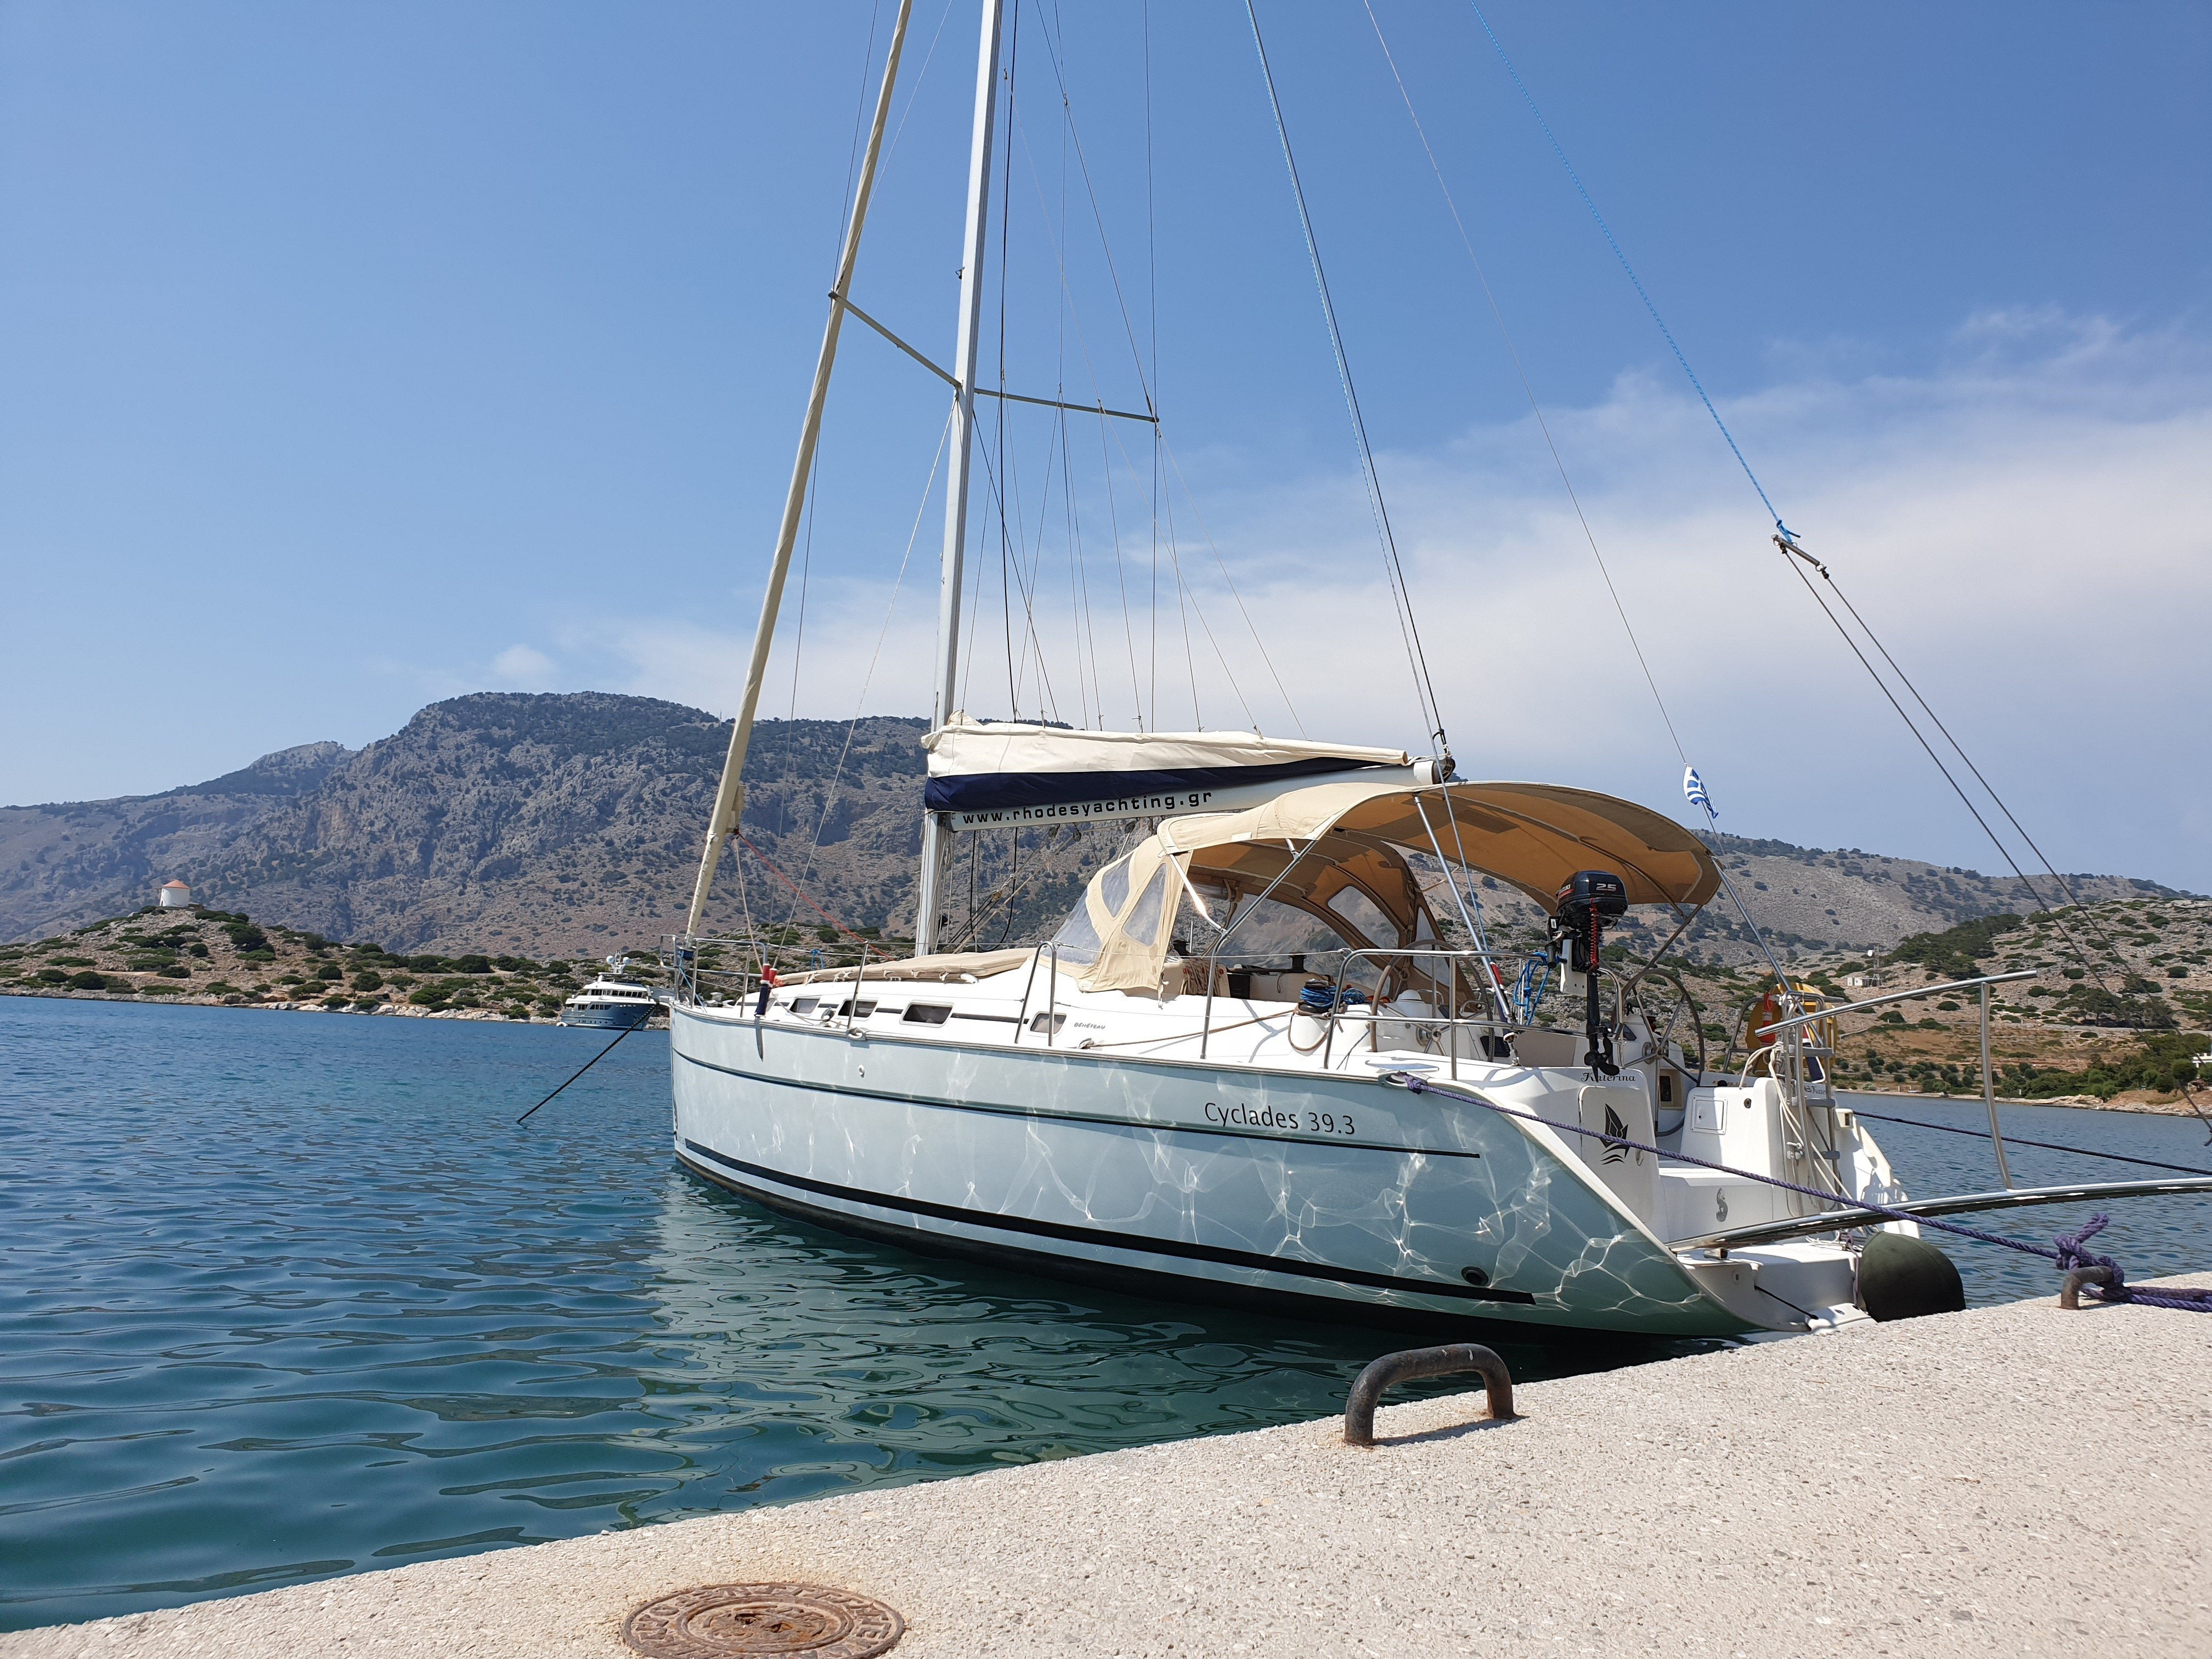 Cyclades 39.3 (Rhodes Yachting)  - 2